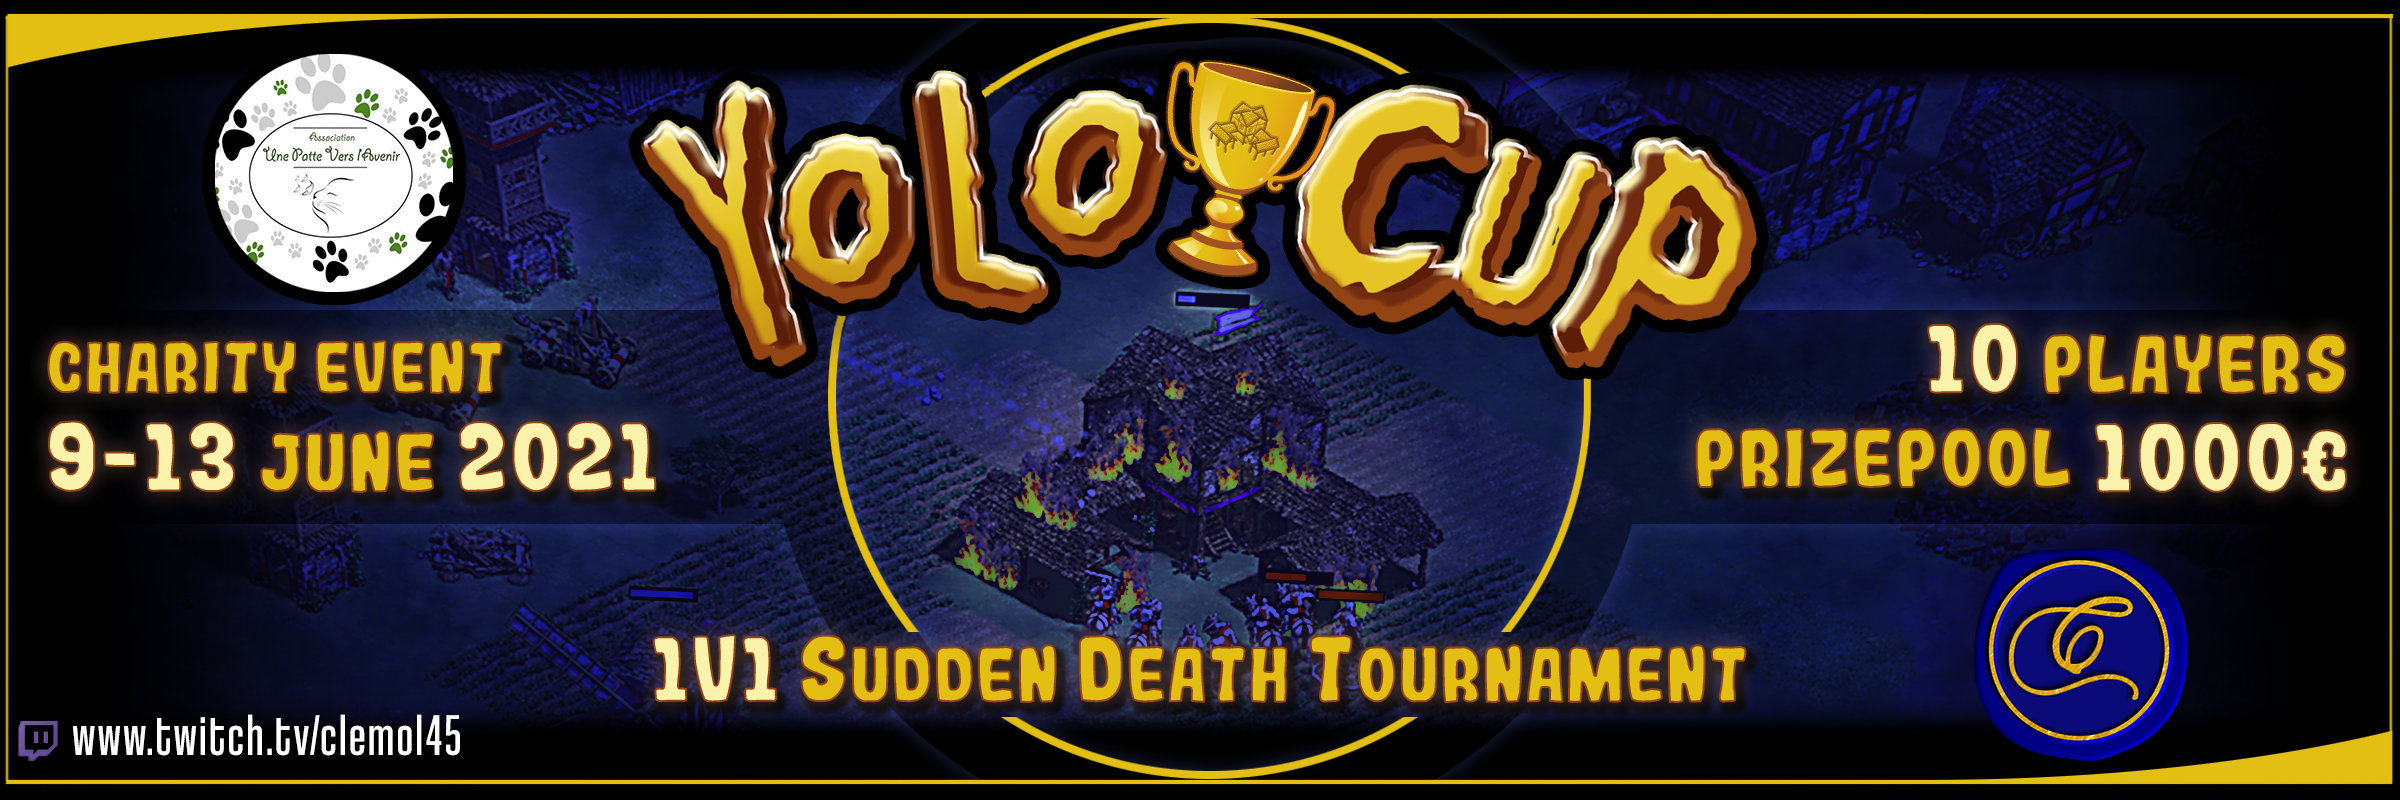 yolocup_baniere.png